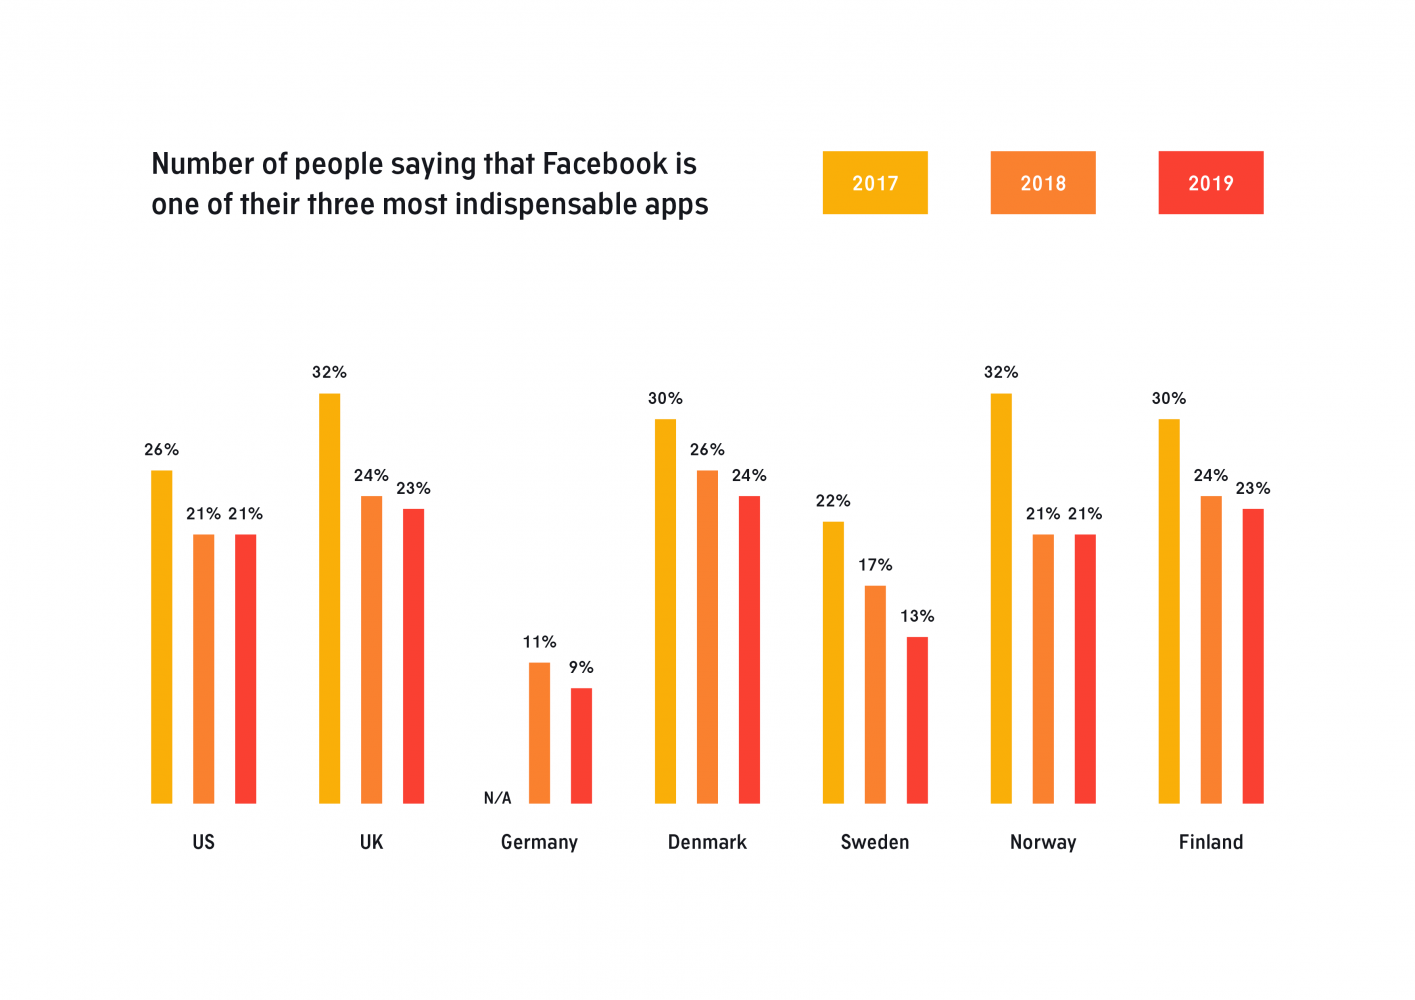 This chart shows the percentage of people saying that Facebook is one of their most indispensable apps